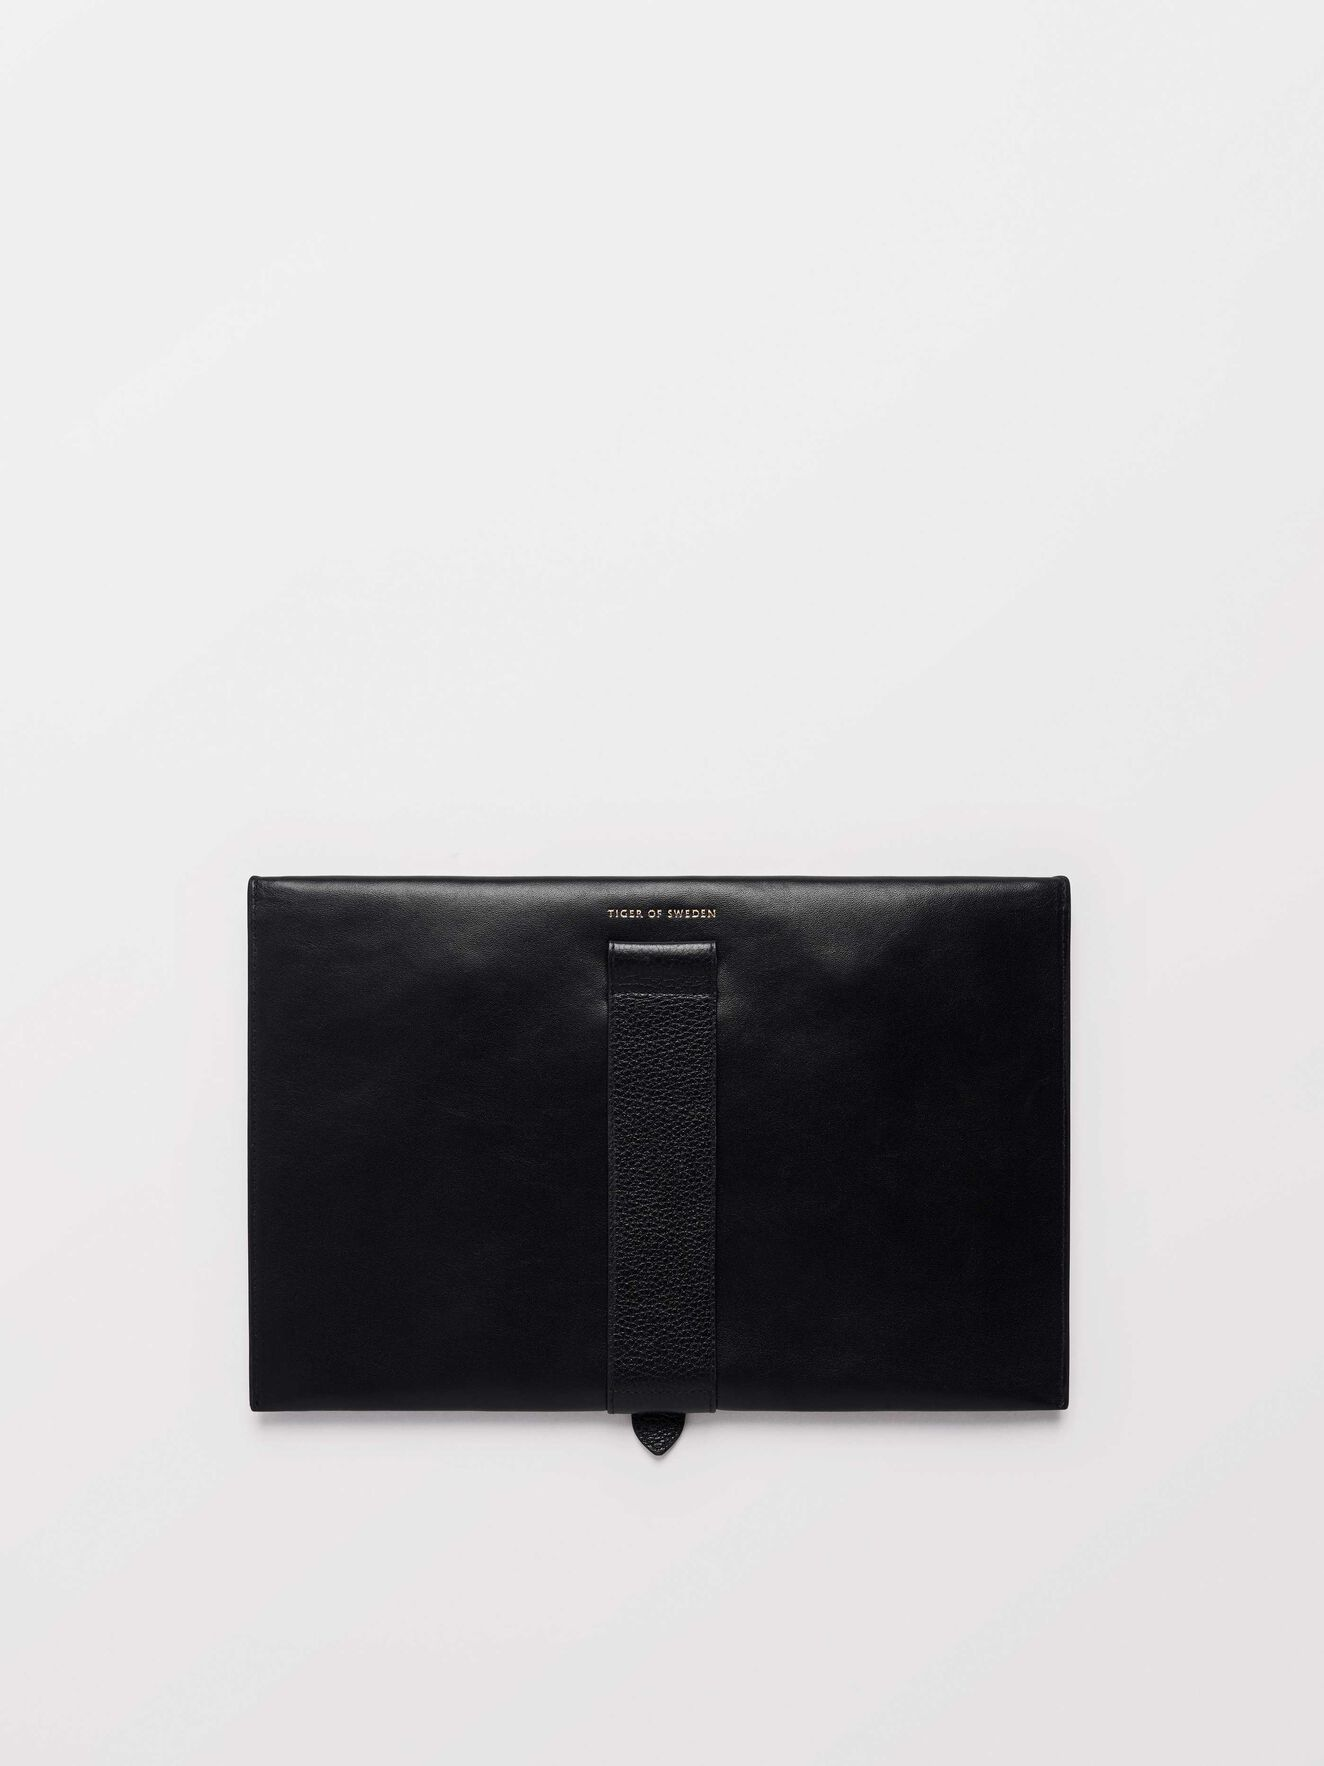 Bustella Clutch in Black from Tiger of Sweden